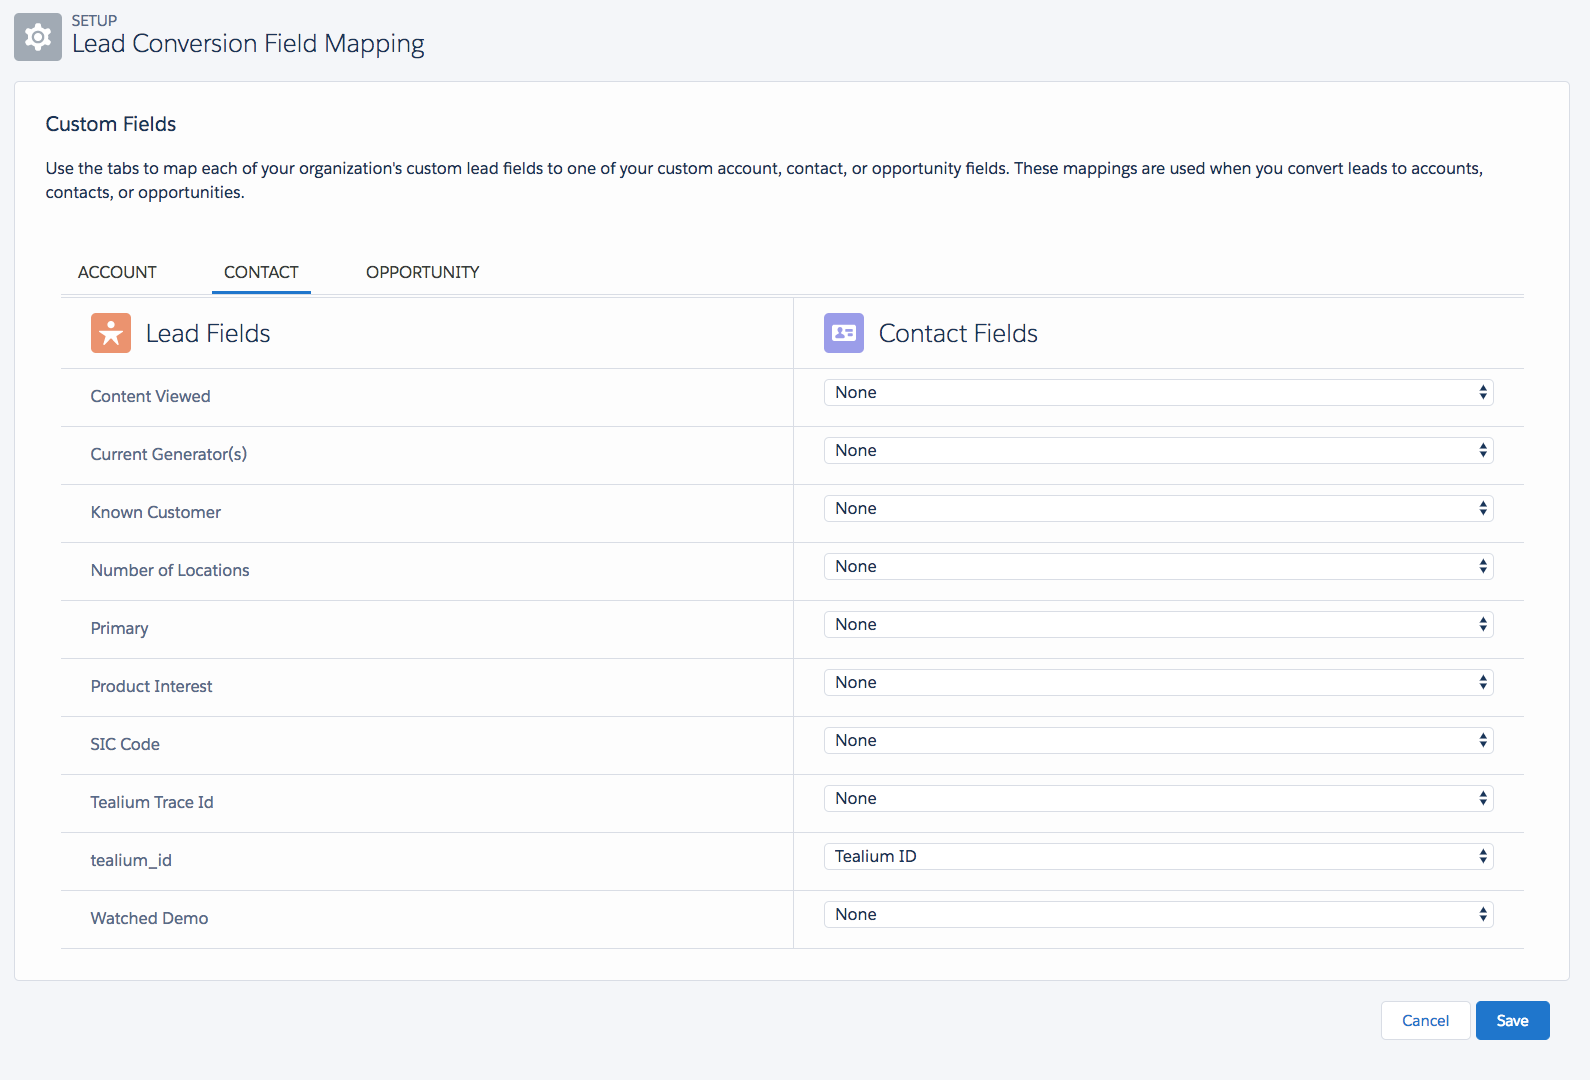 tealium-salesforce-lead-conversion-mapping.png